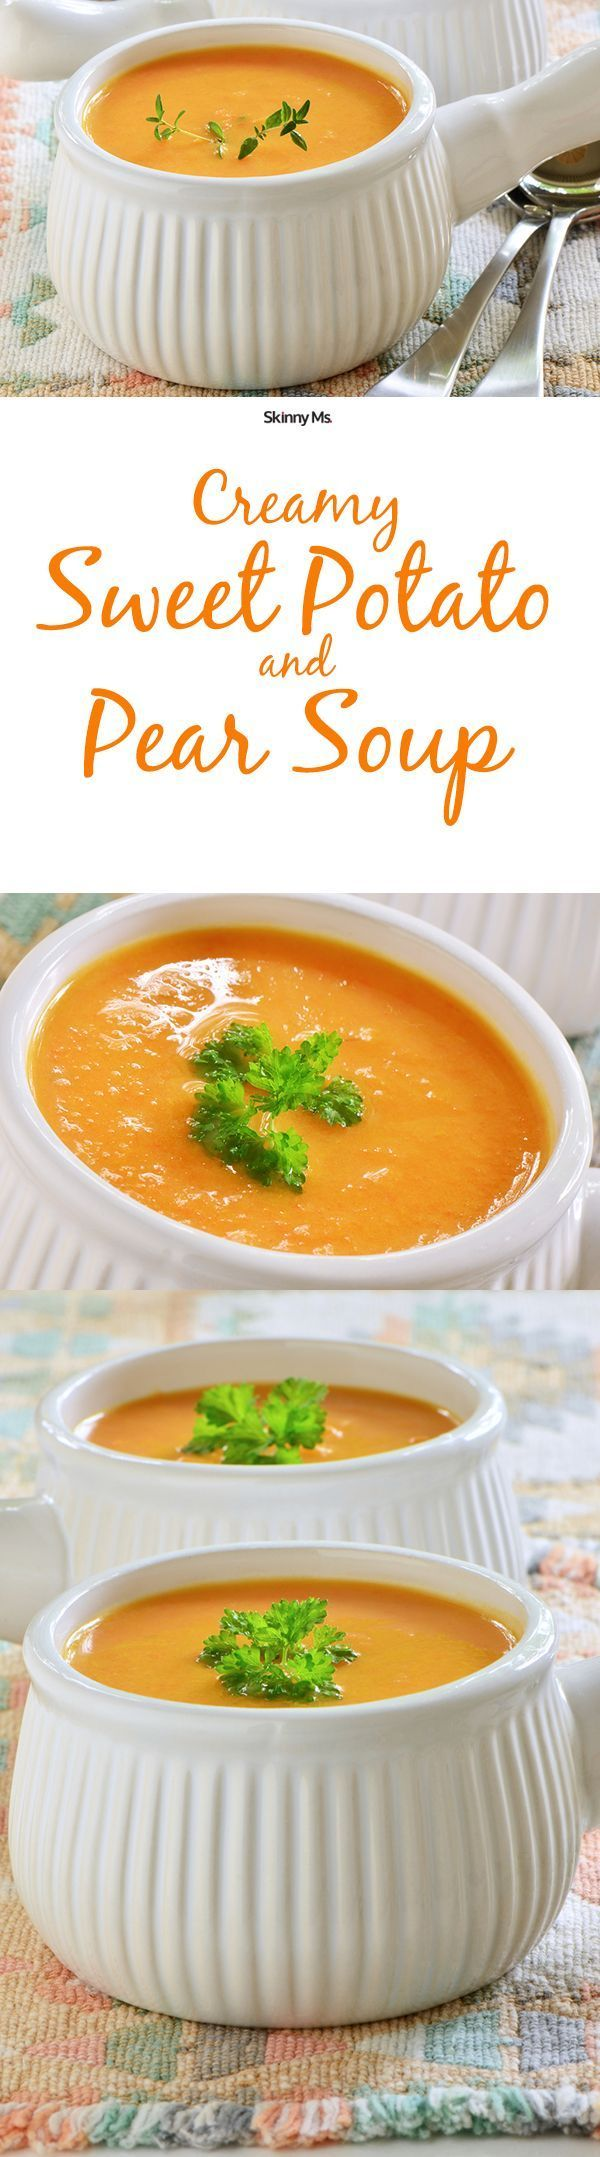 Creamy Sweet Potato and Pear Soup is only 93 calories per serving!